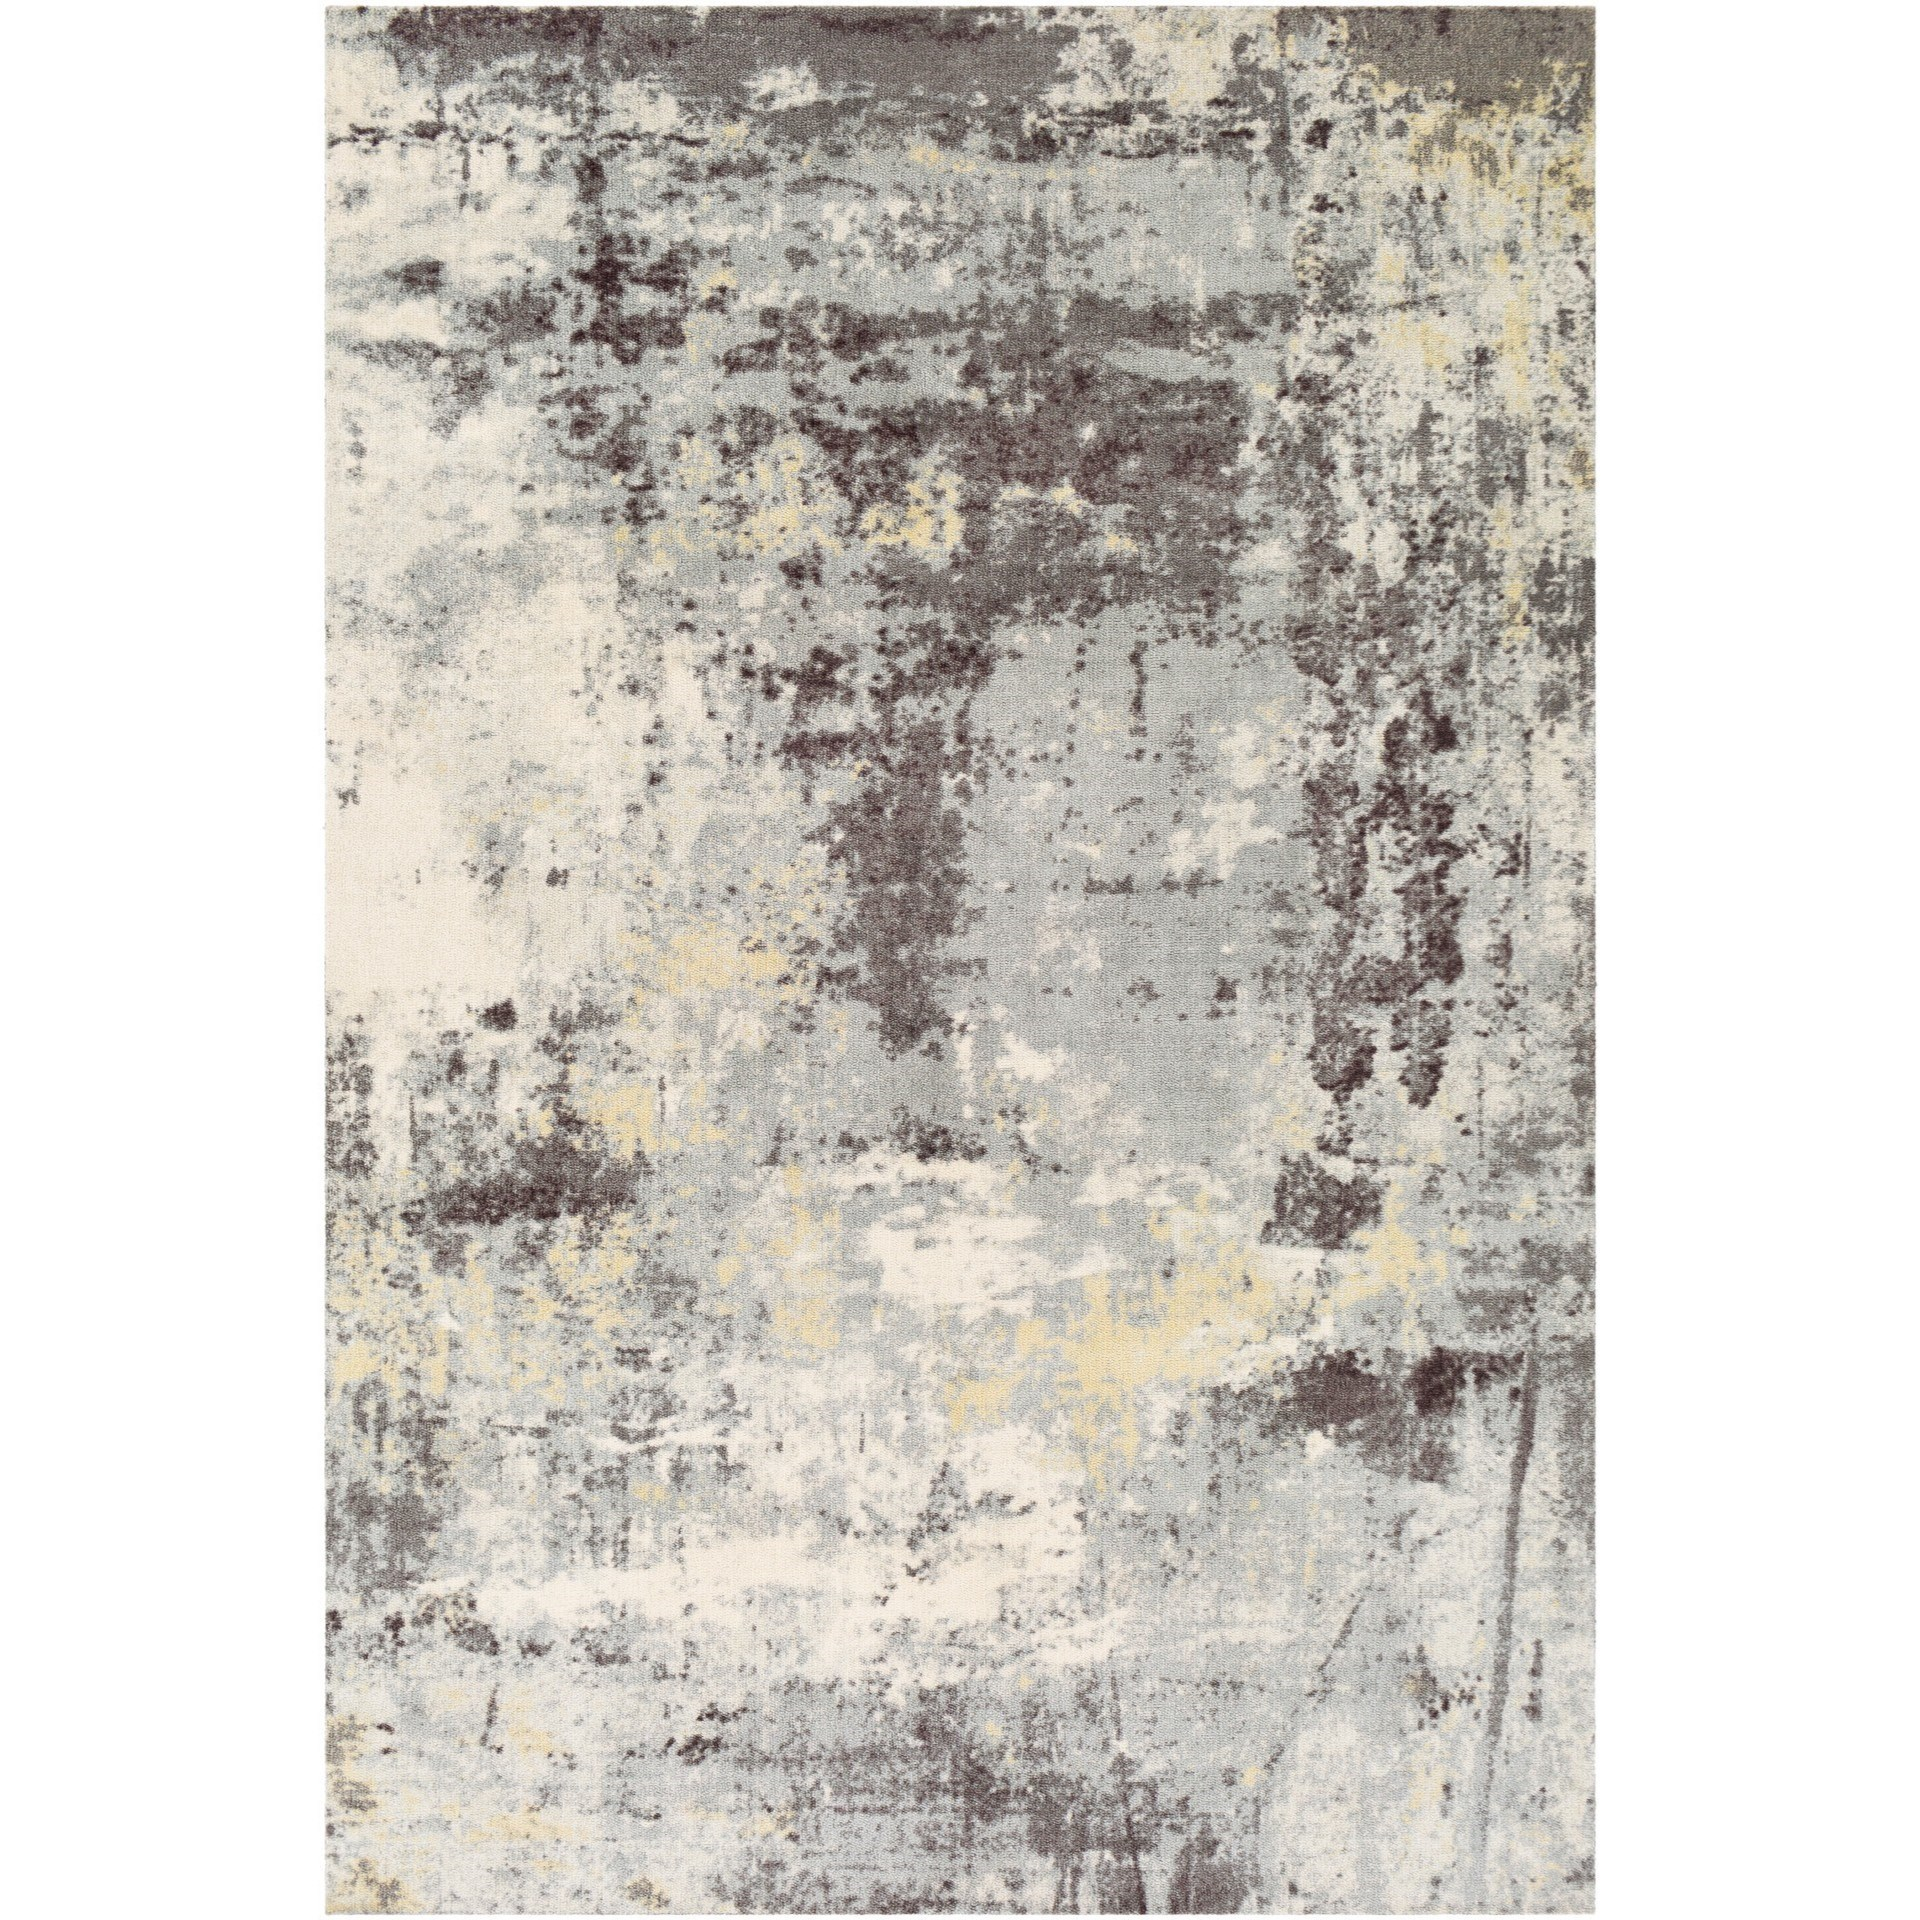 Felicity 8' x 10' Rug by Surya at SuperStore